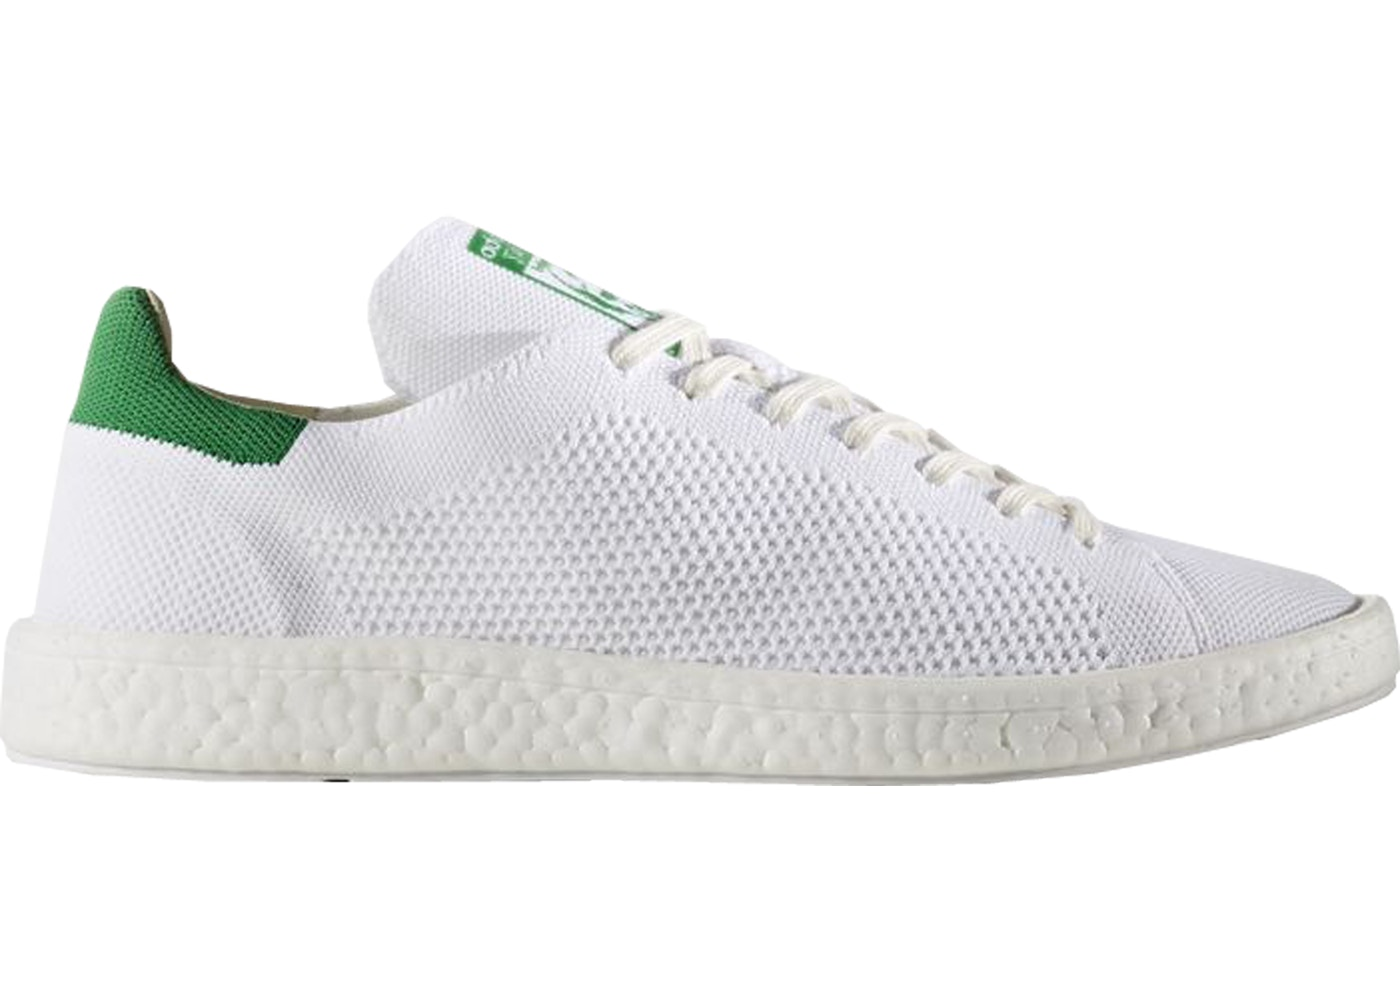 892a038e839 adidas Stan Smith Boost Primeknit White Green - BB0013